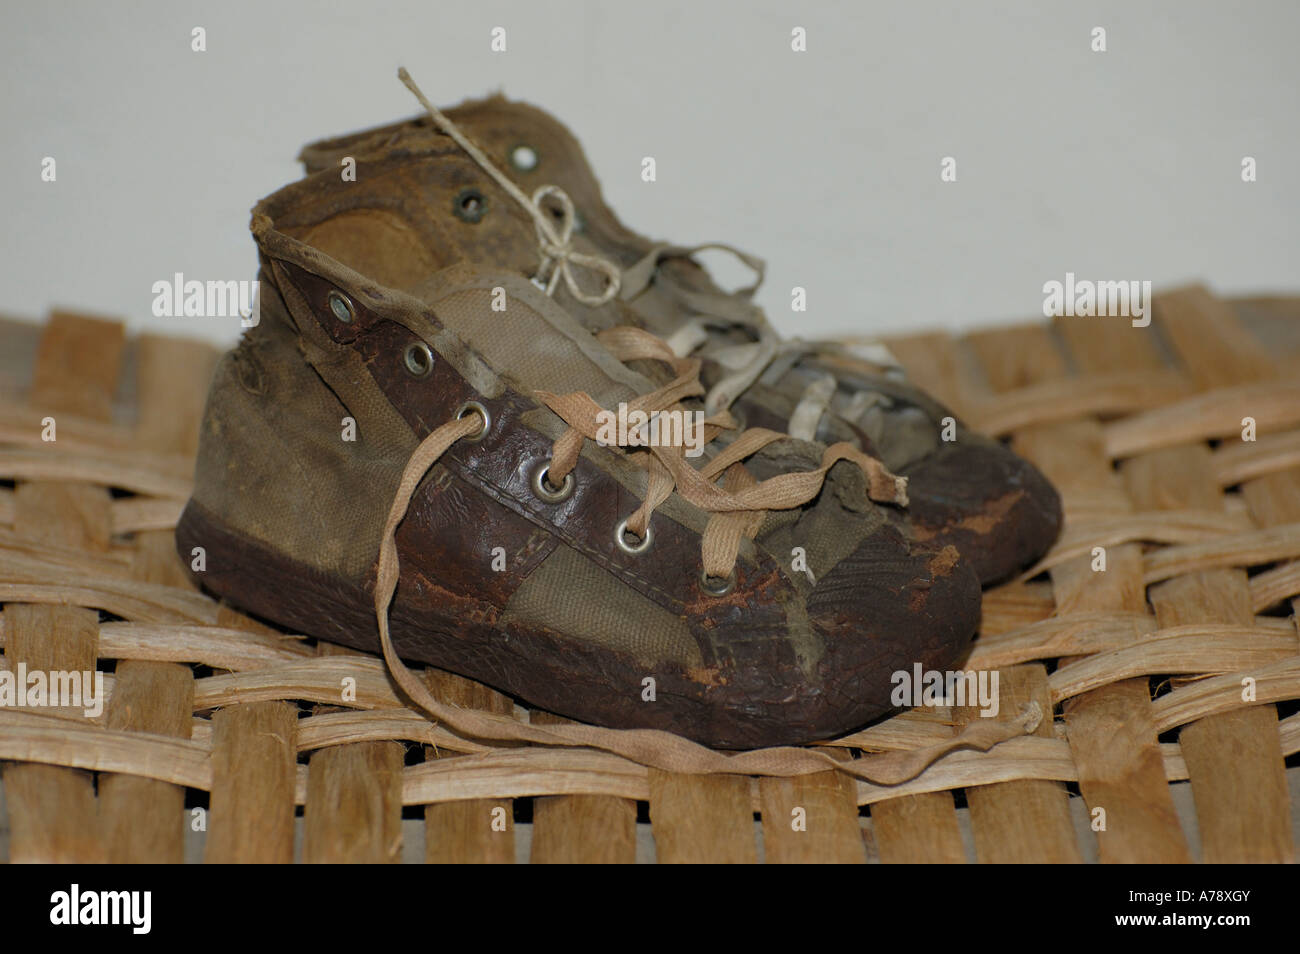 Very old worn out pair of children s sneakers or tennis shoes - Stock Image